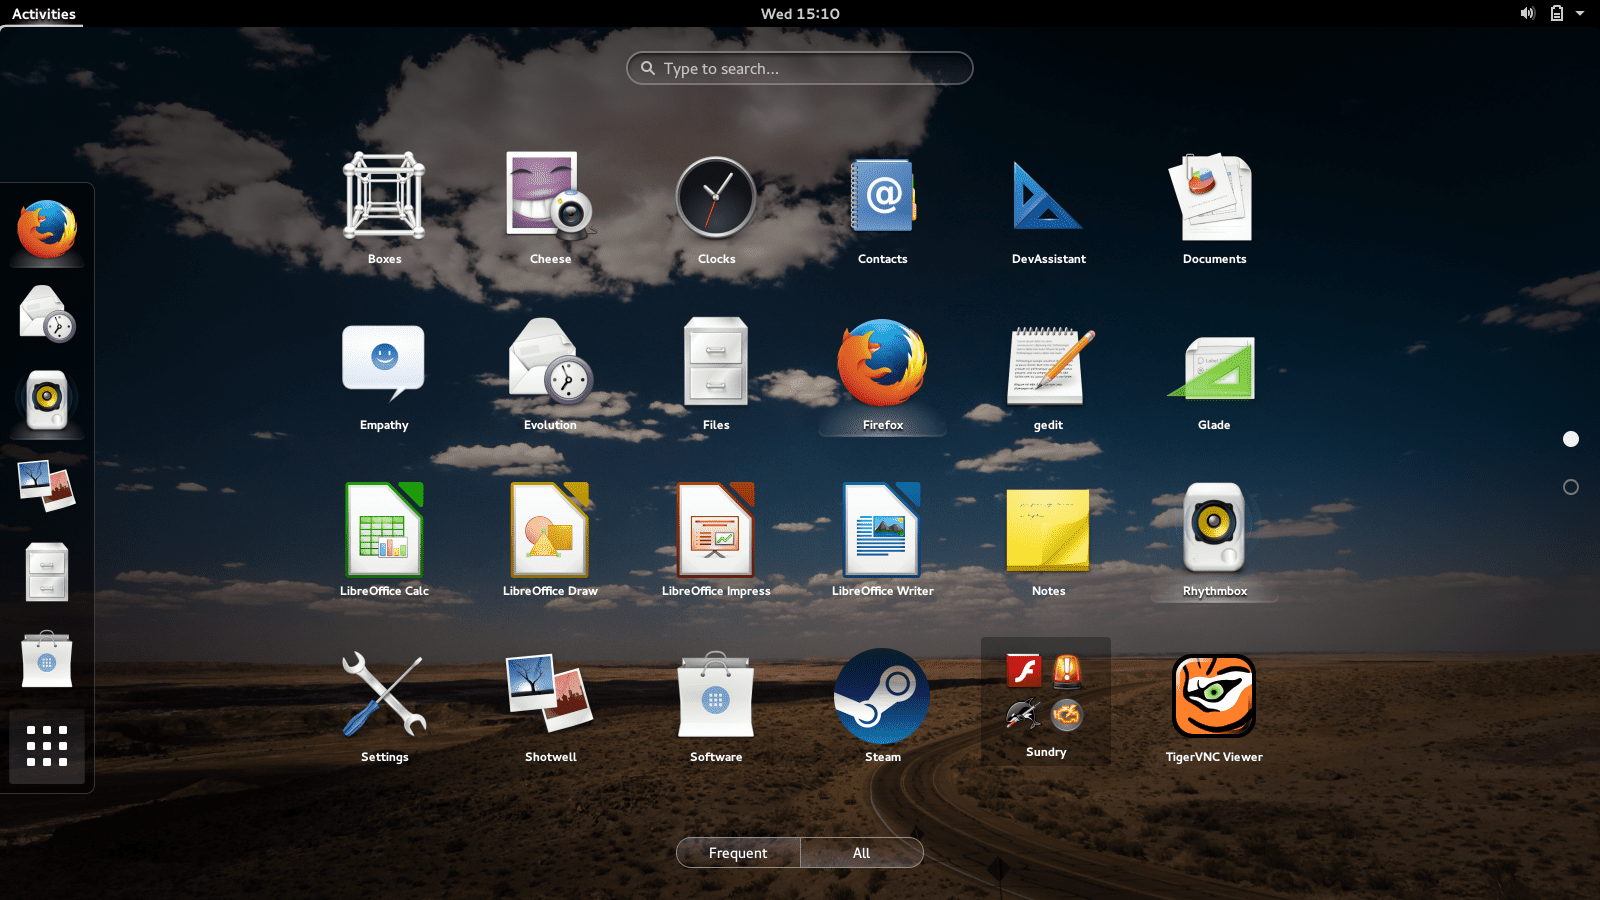 All applications in Gnome